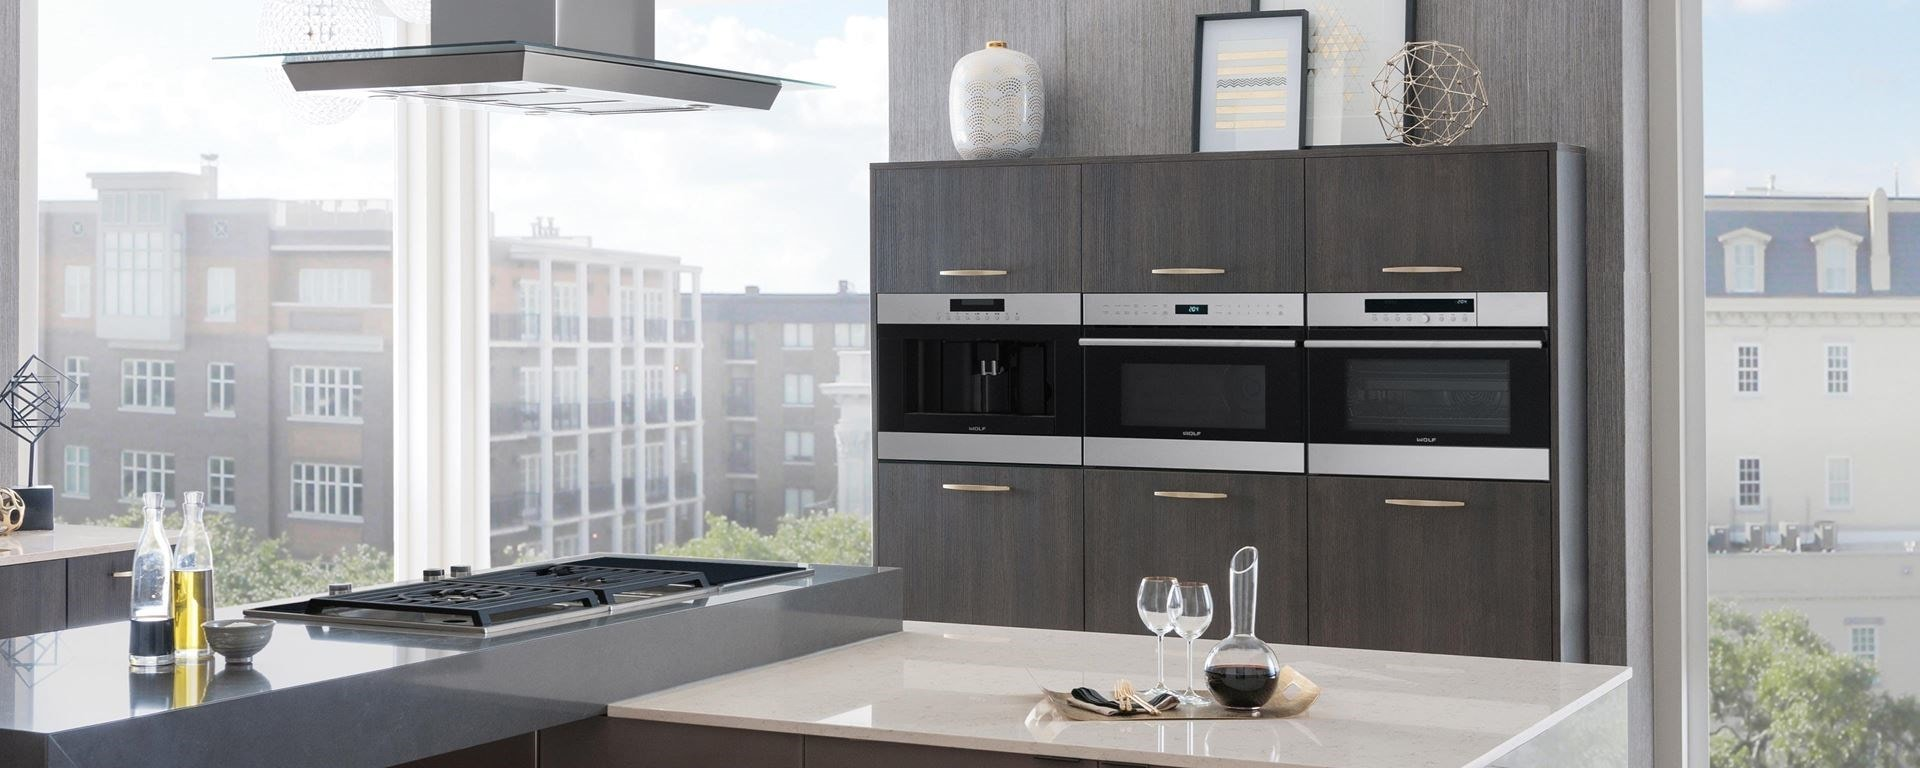 Wolf kitchen featuring a Wolf coffee system, electric cooktop, convection steam oven, microwave, specialty modules and ventilation